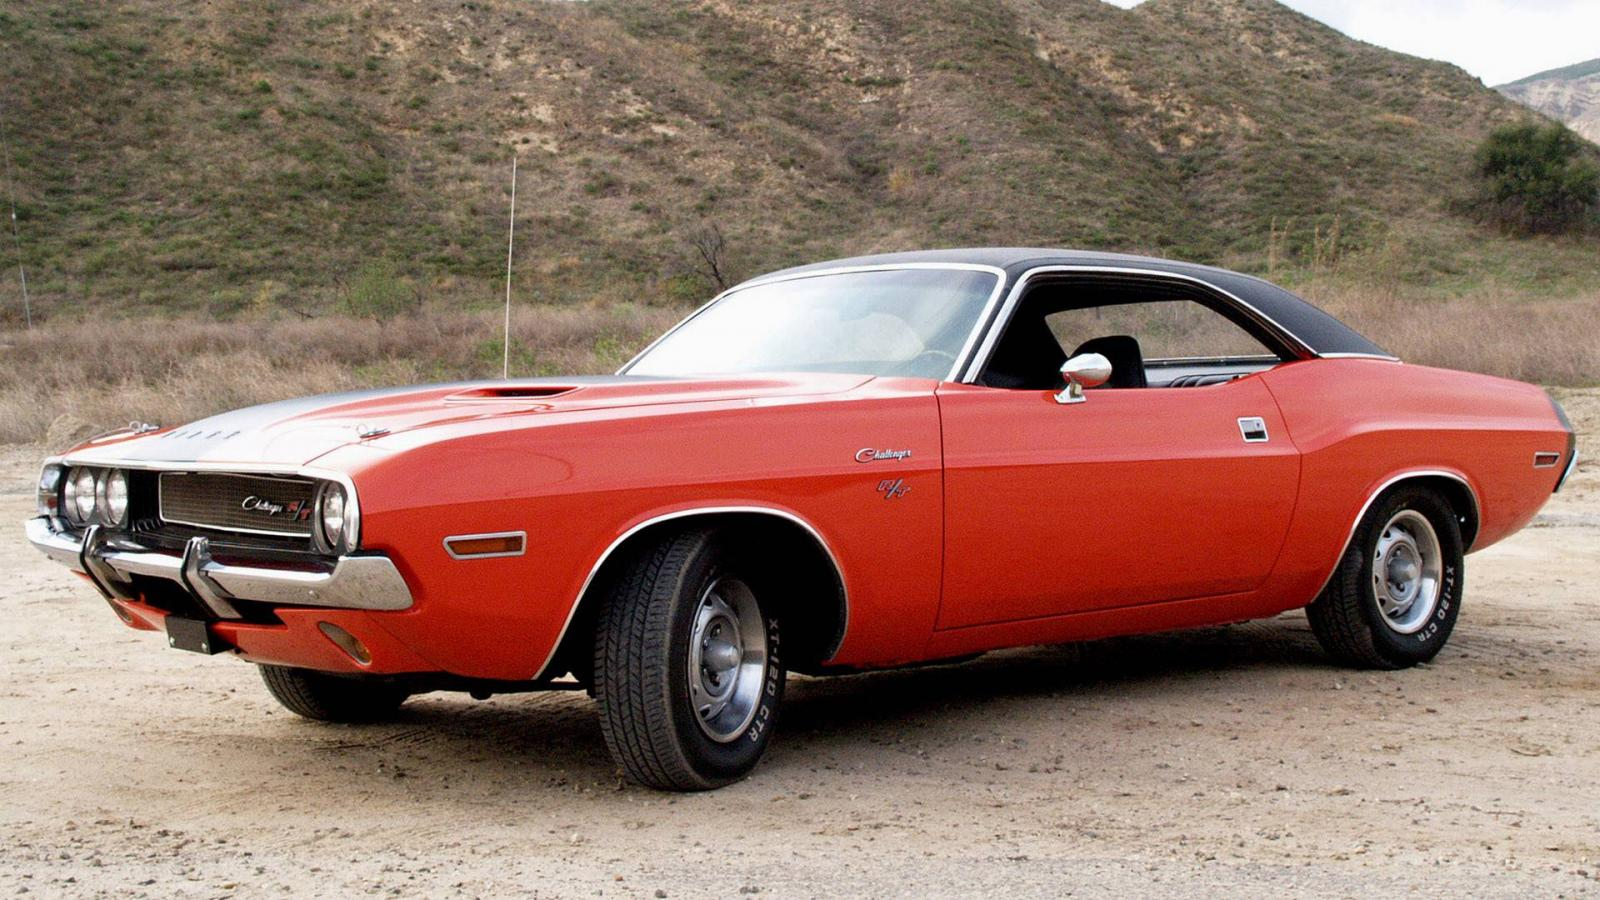 Widescreen vintage cars classic car dodge challenger wallpaper HQ 1600x900